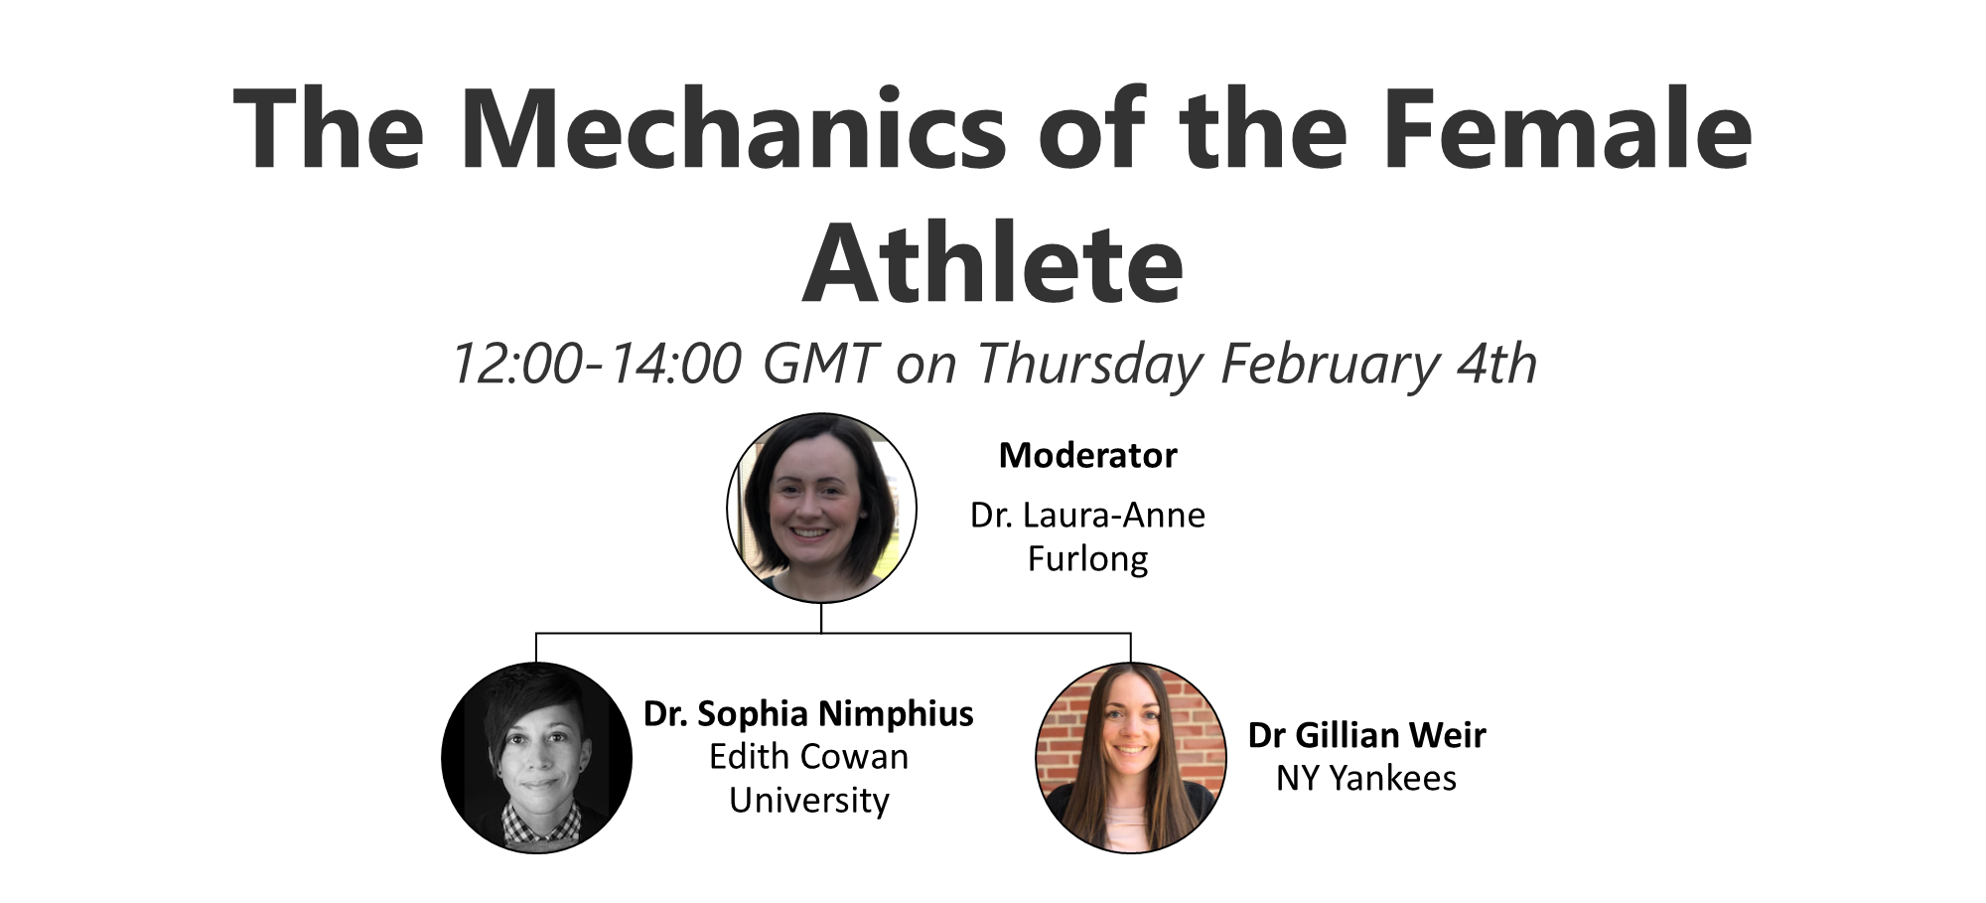 The Mechanics of the Female Athlete. 12:00-14:00 GMT on Thursday February 4th. Moderator: Dr Laura-Anne Furlong